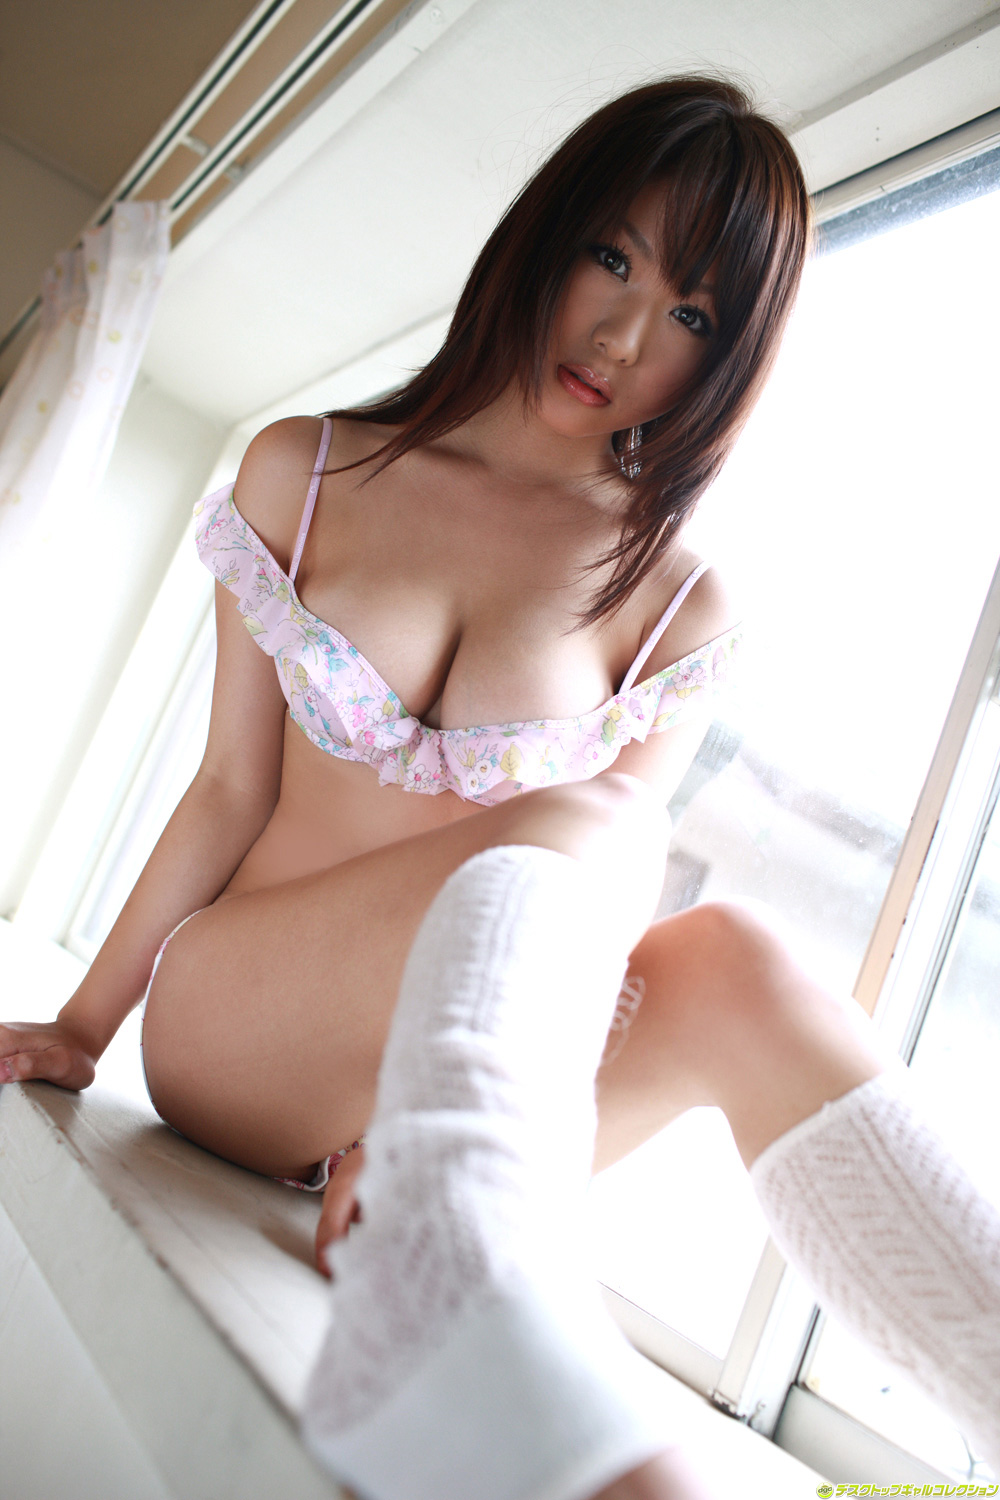 Hot asian in wild group fucking session 2